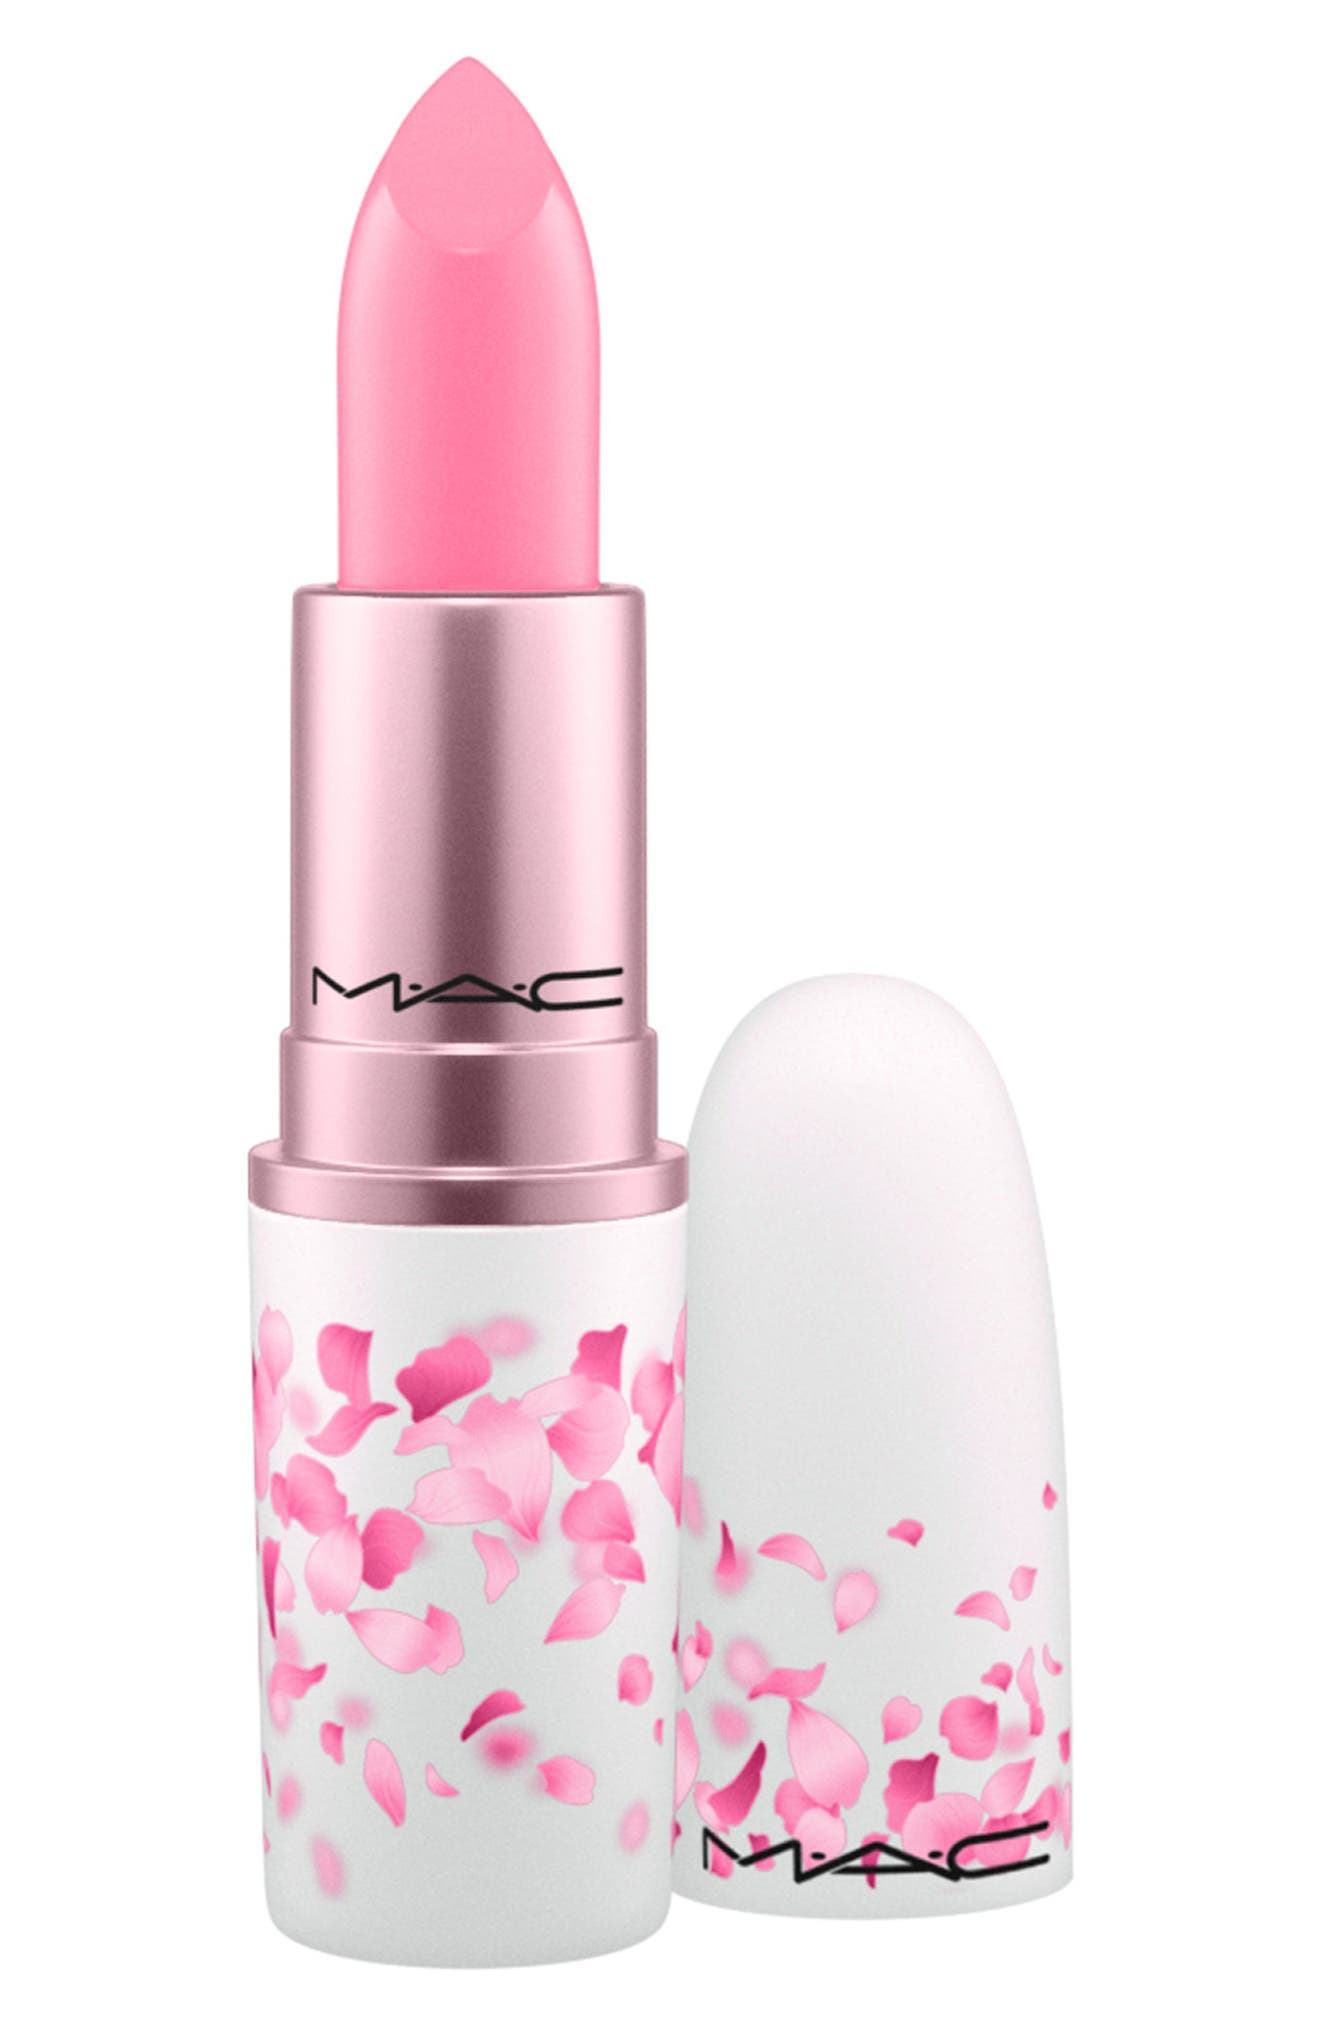 MAC COSMETICS MAC Boom, Boom, Bloom Lipstick, Main, color, 650